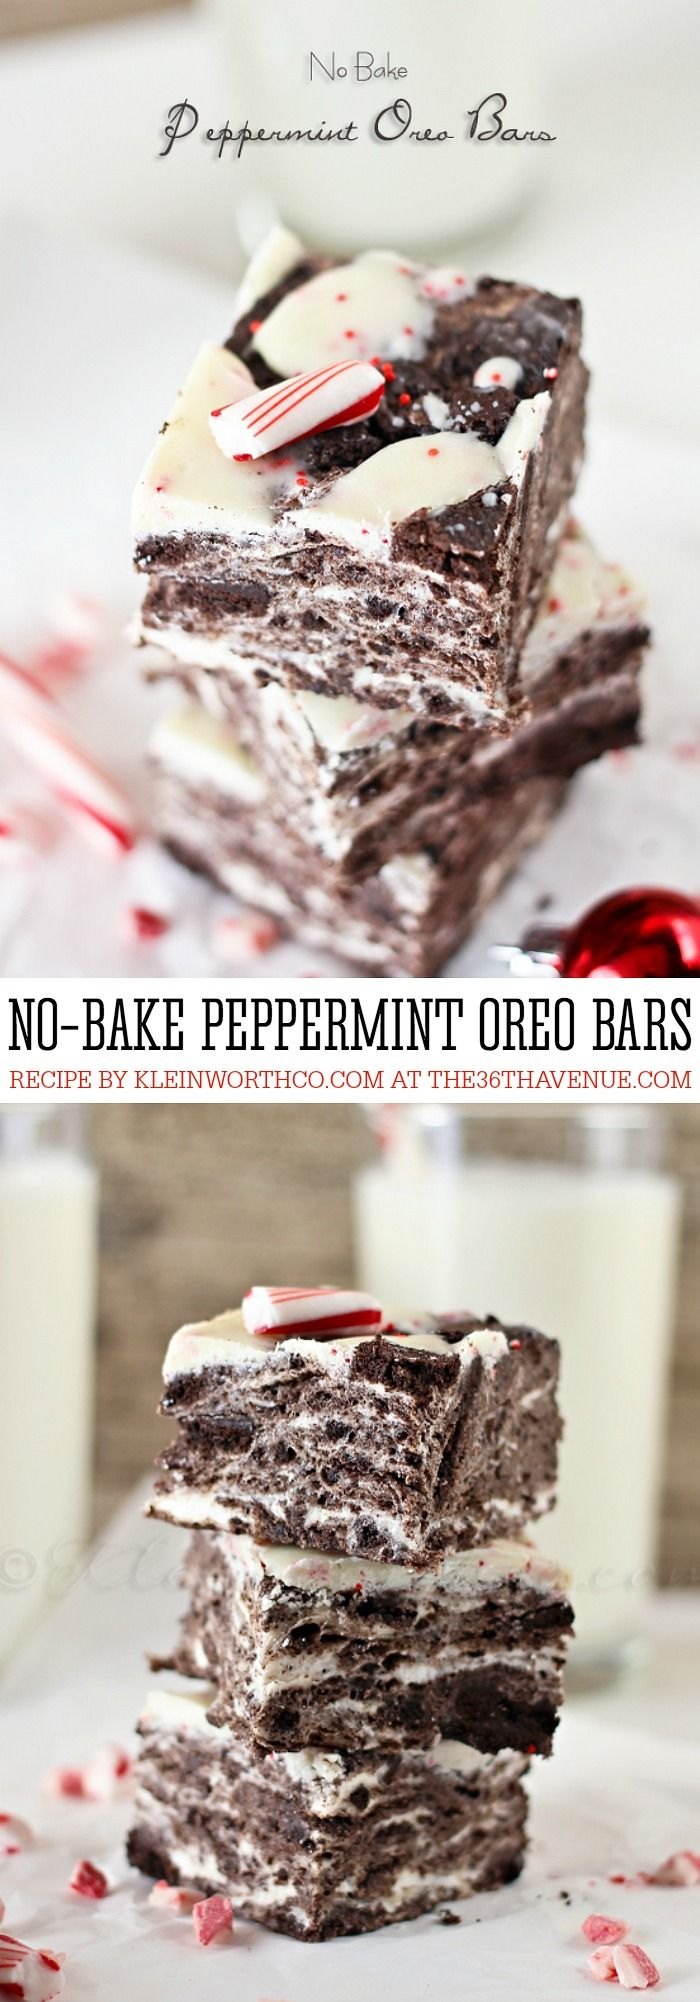 Best Recipes on Pinterest - This No Bake Peppermint Oreo Bars Recipe is amazing and super easy to make! Perfect for Christmas dessert or as a delicious treat or snack! PIN IT NOW and make it later!